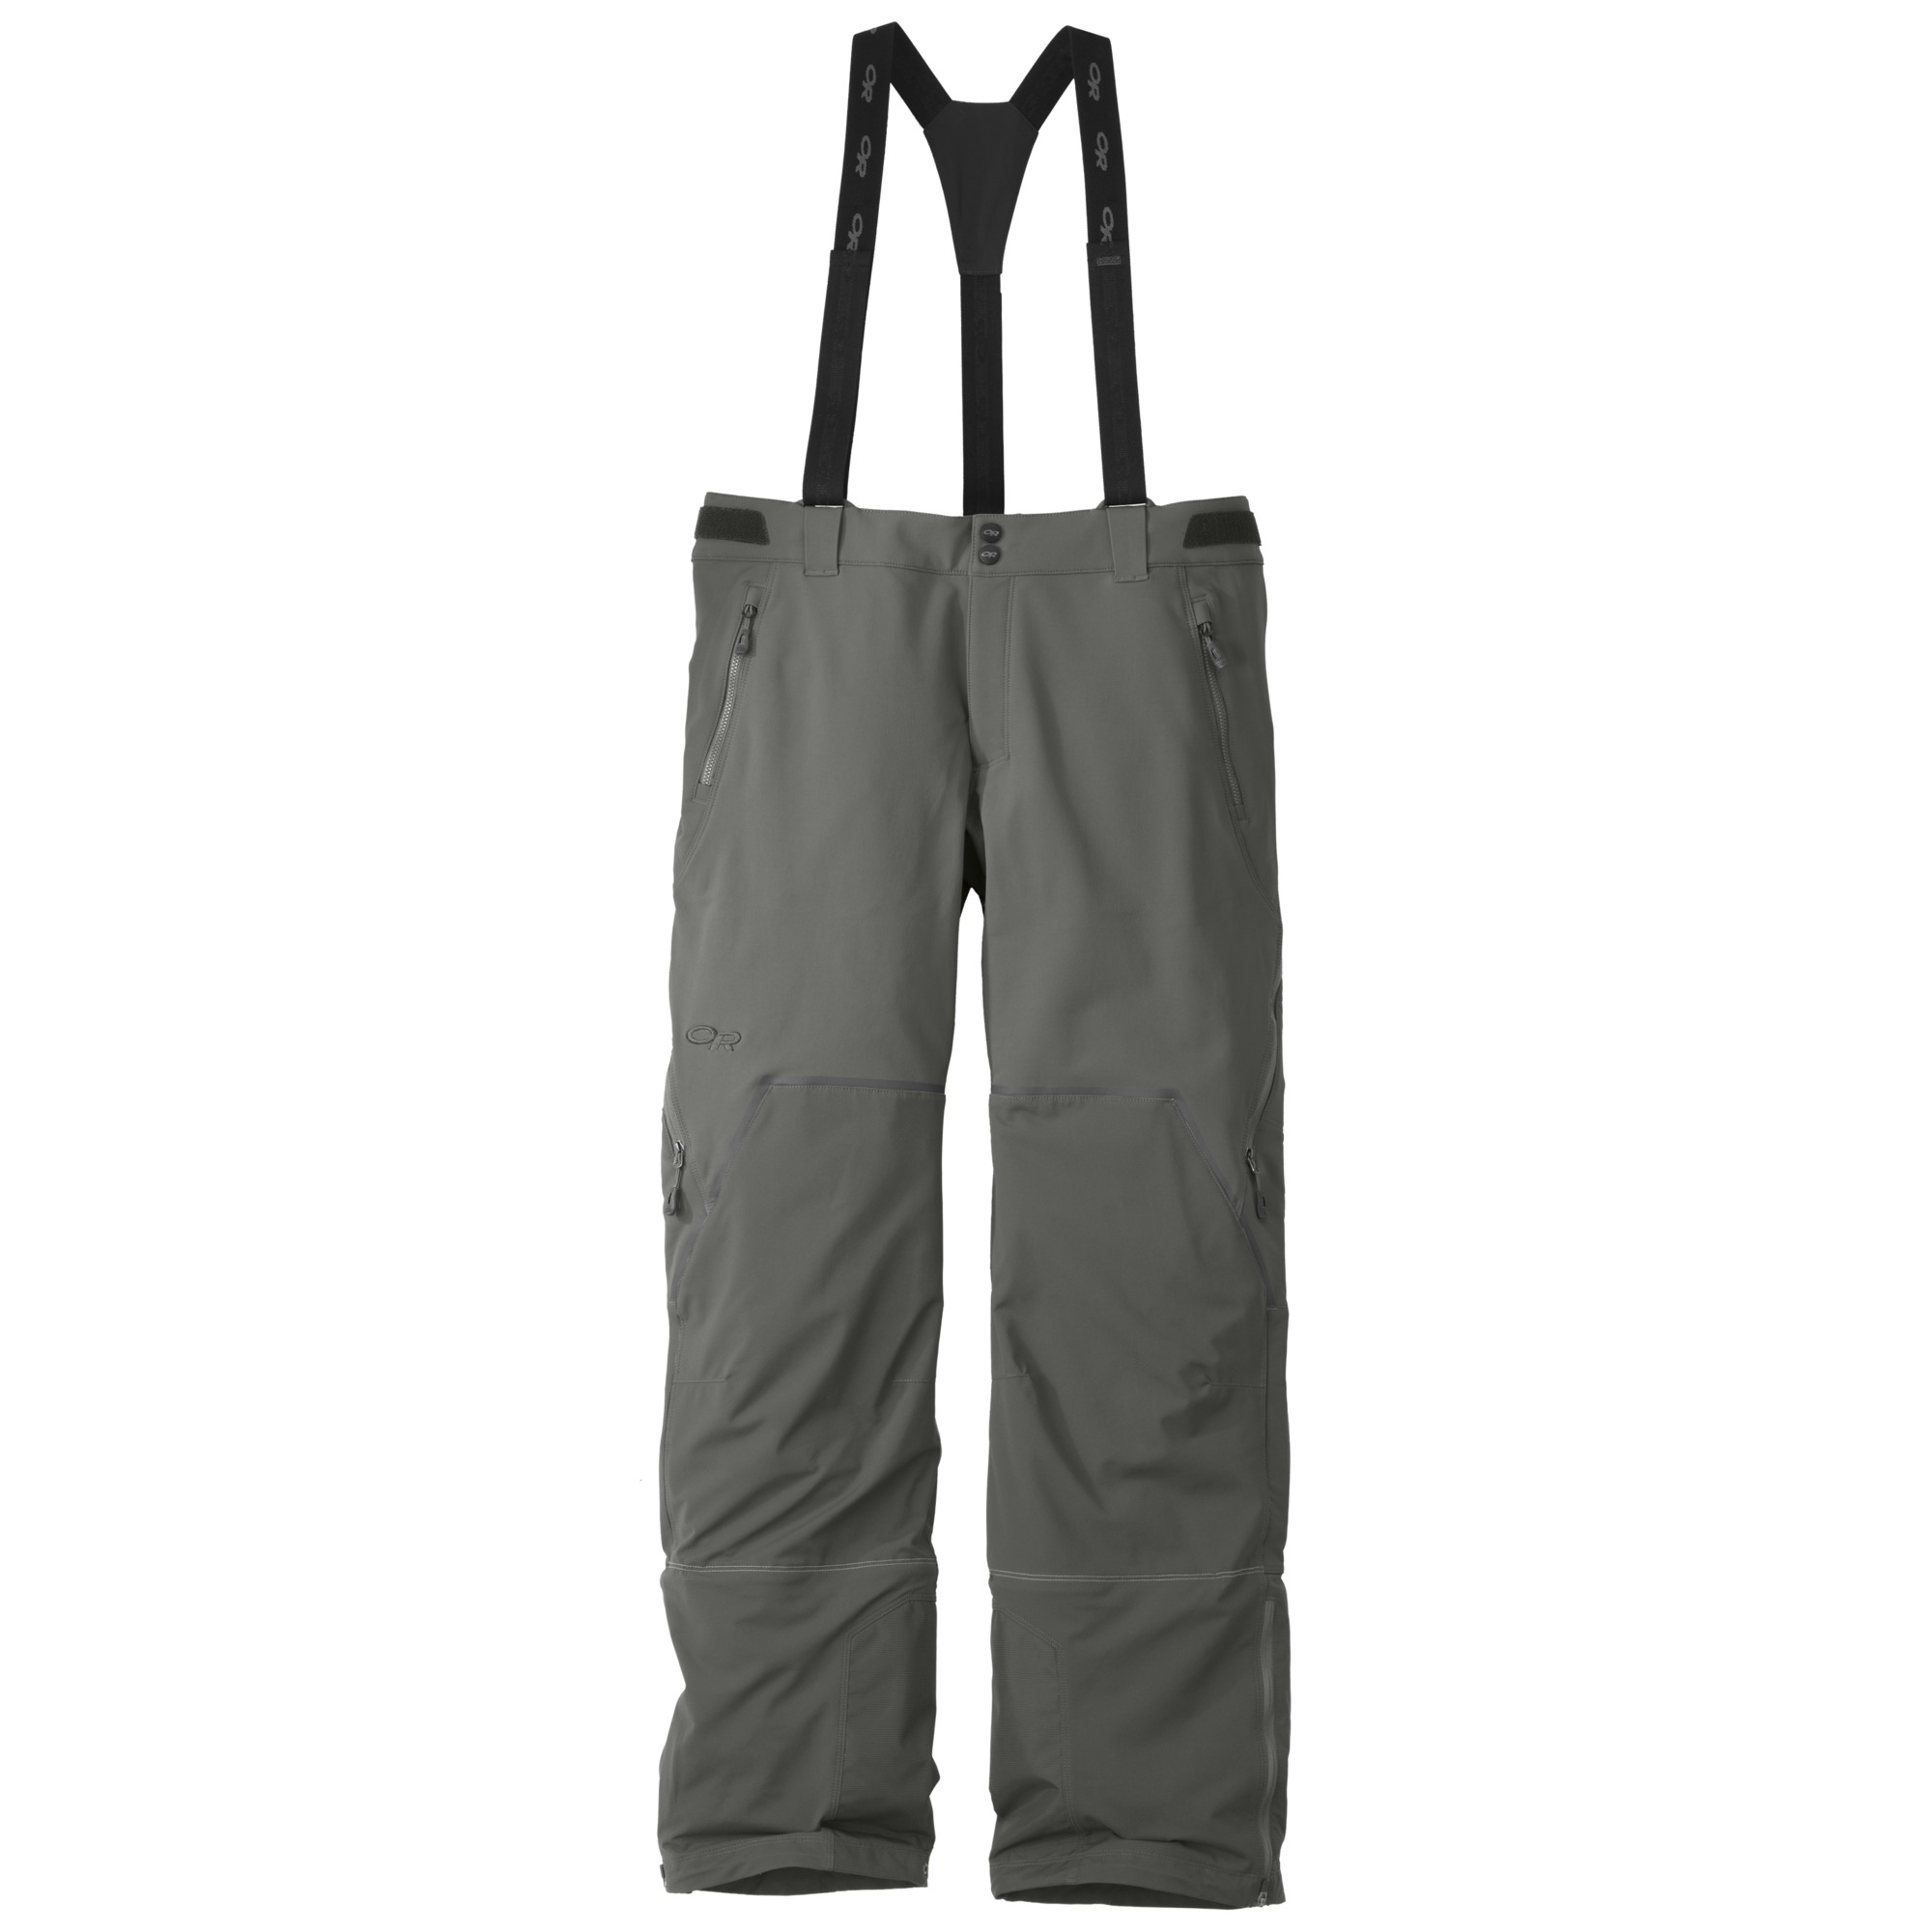 2430390008_146217_png_zoom_5 men's outdoor pants for hiking, climbing, skiing outdoor extreme tactical dynamics wiring diagram at gsmx.co